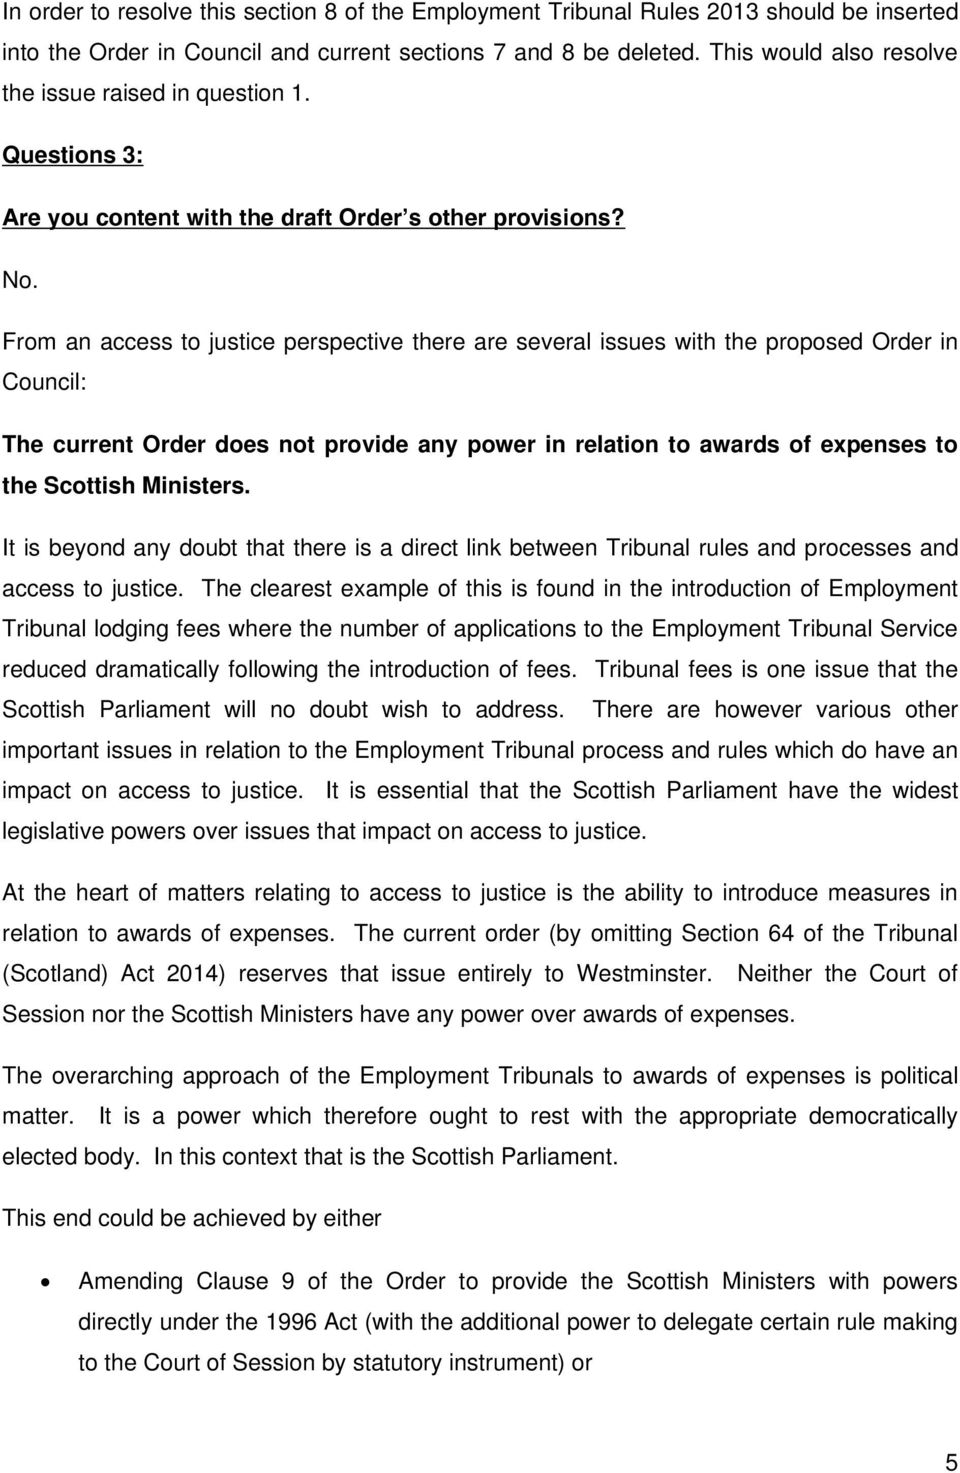 From an access to justice perspective there are several issues with the proposed Order in Council: The current Order does not provide any power in relation to awards of expenses to the Scottish